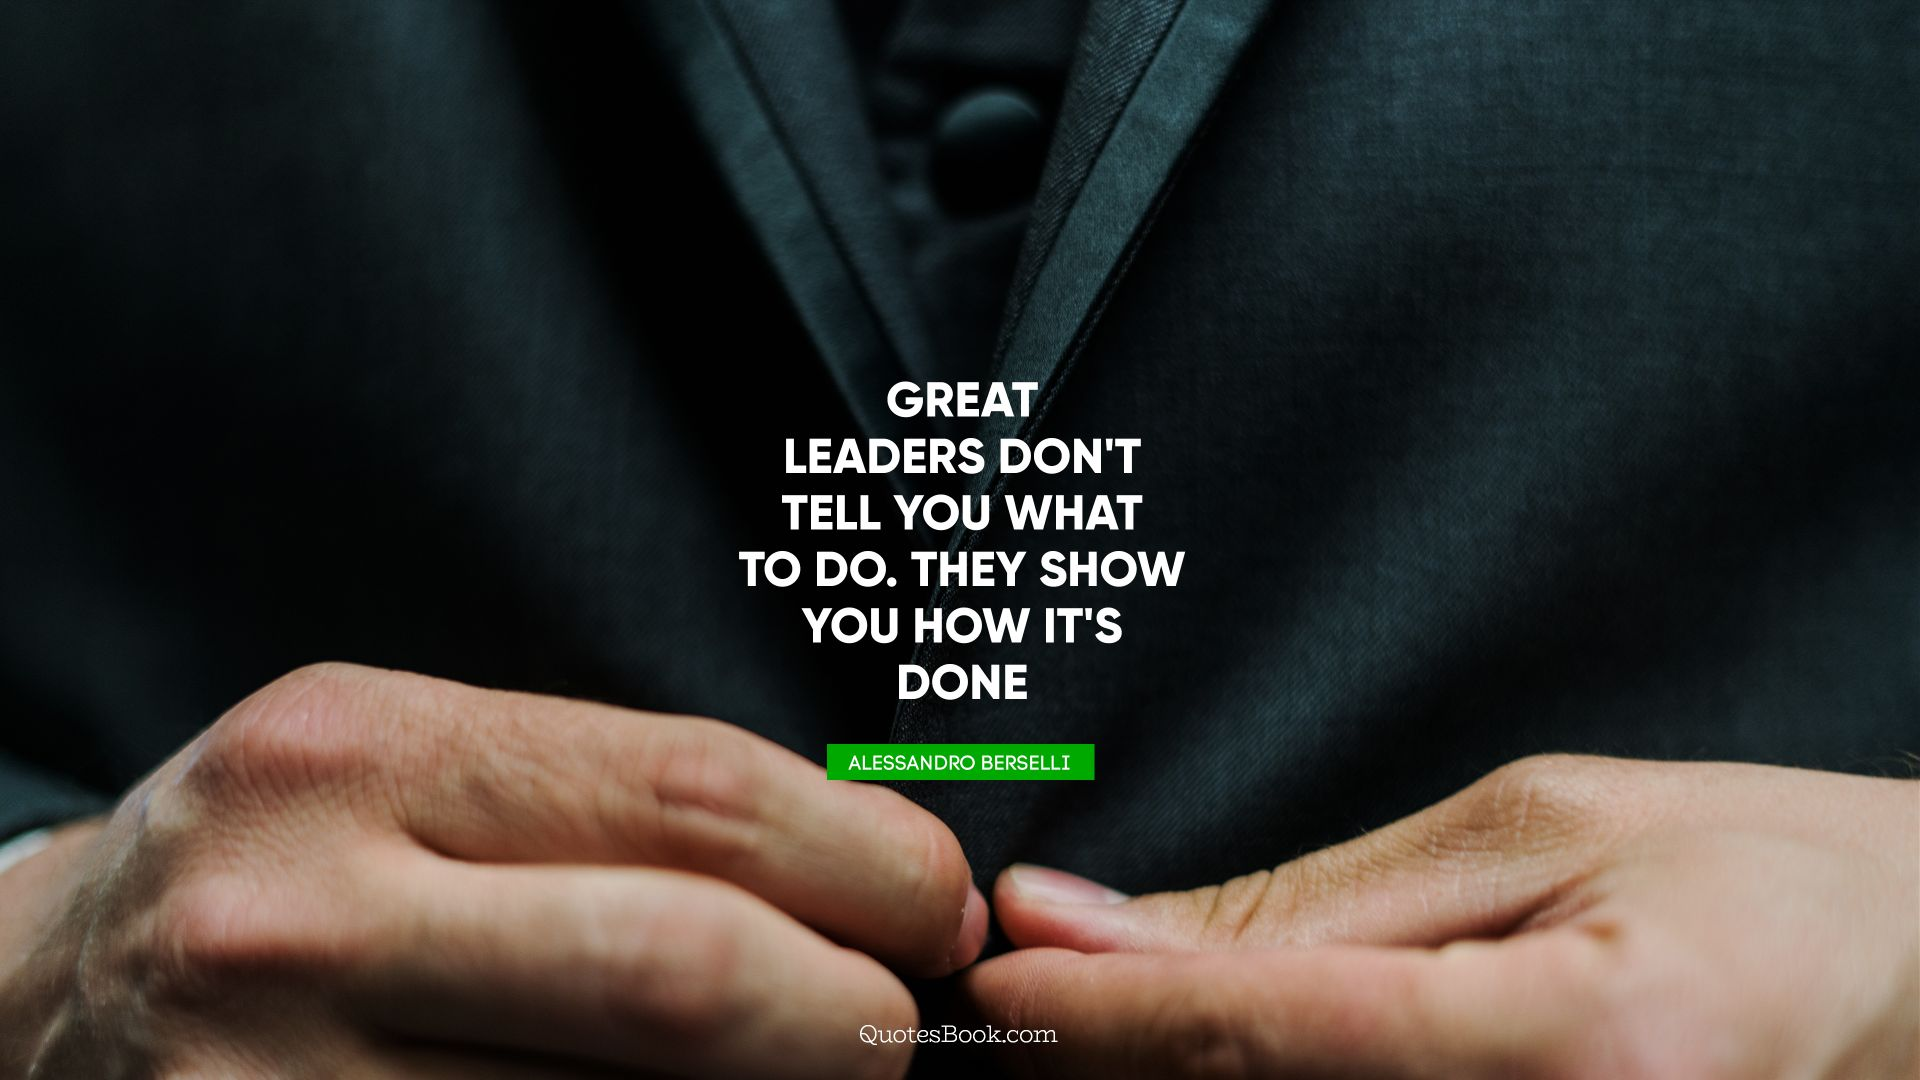 Great leaders don't tell you what to do. They show you how it's done. - Quote by Alessandro Berselli